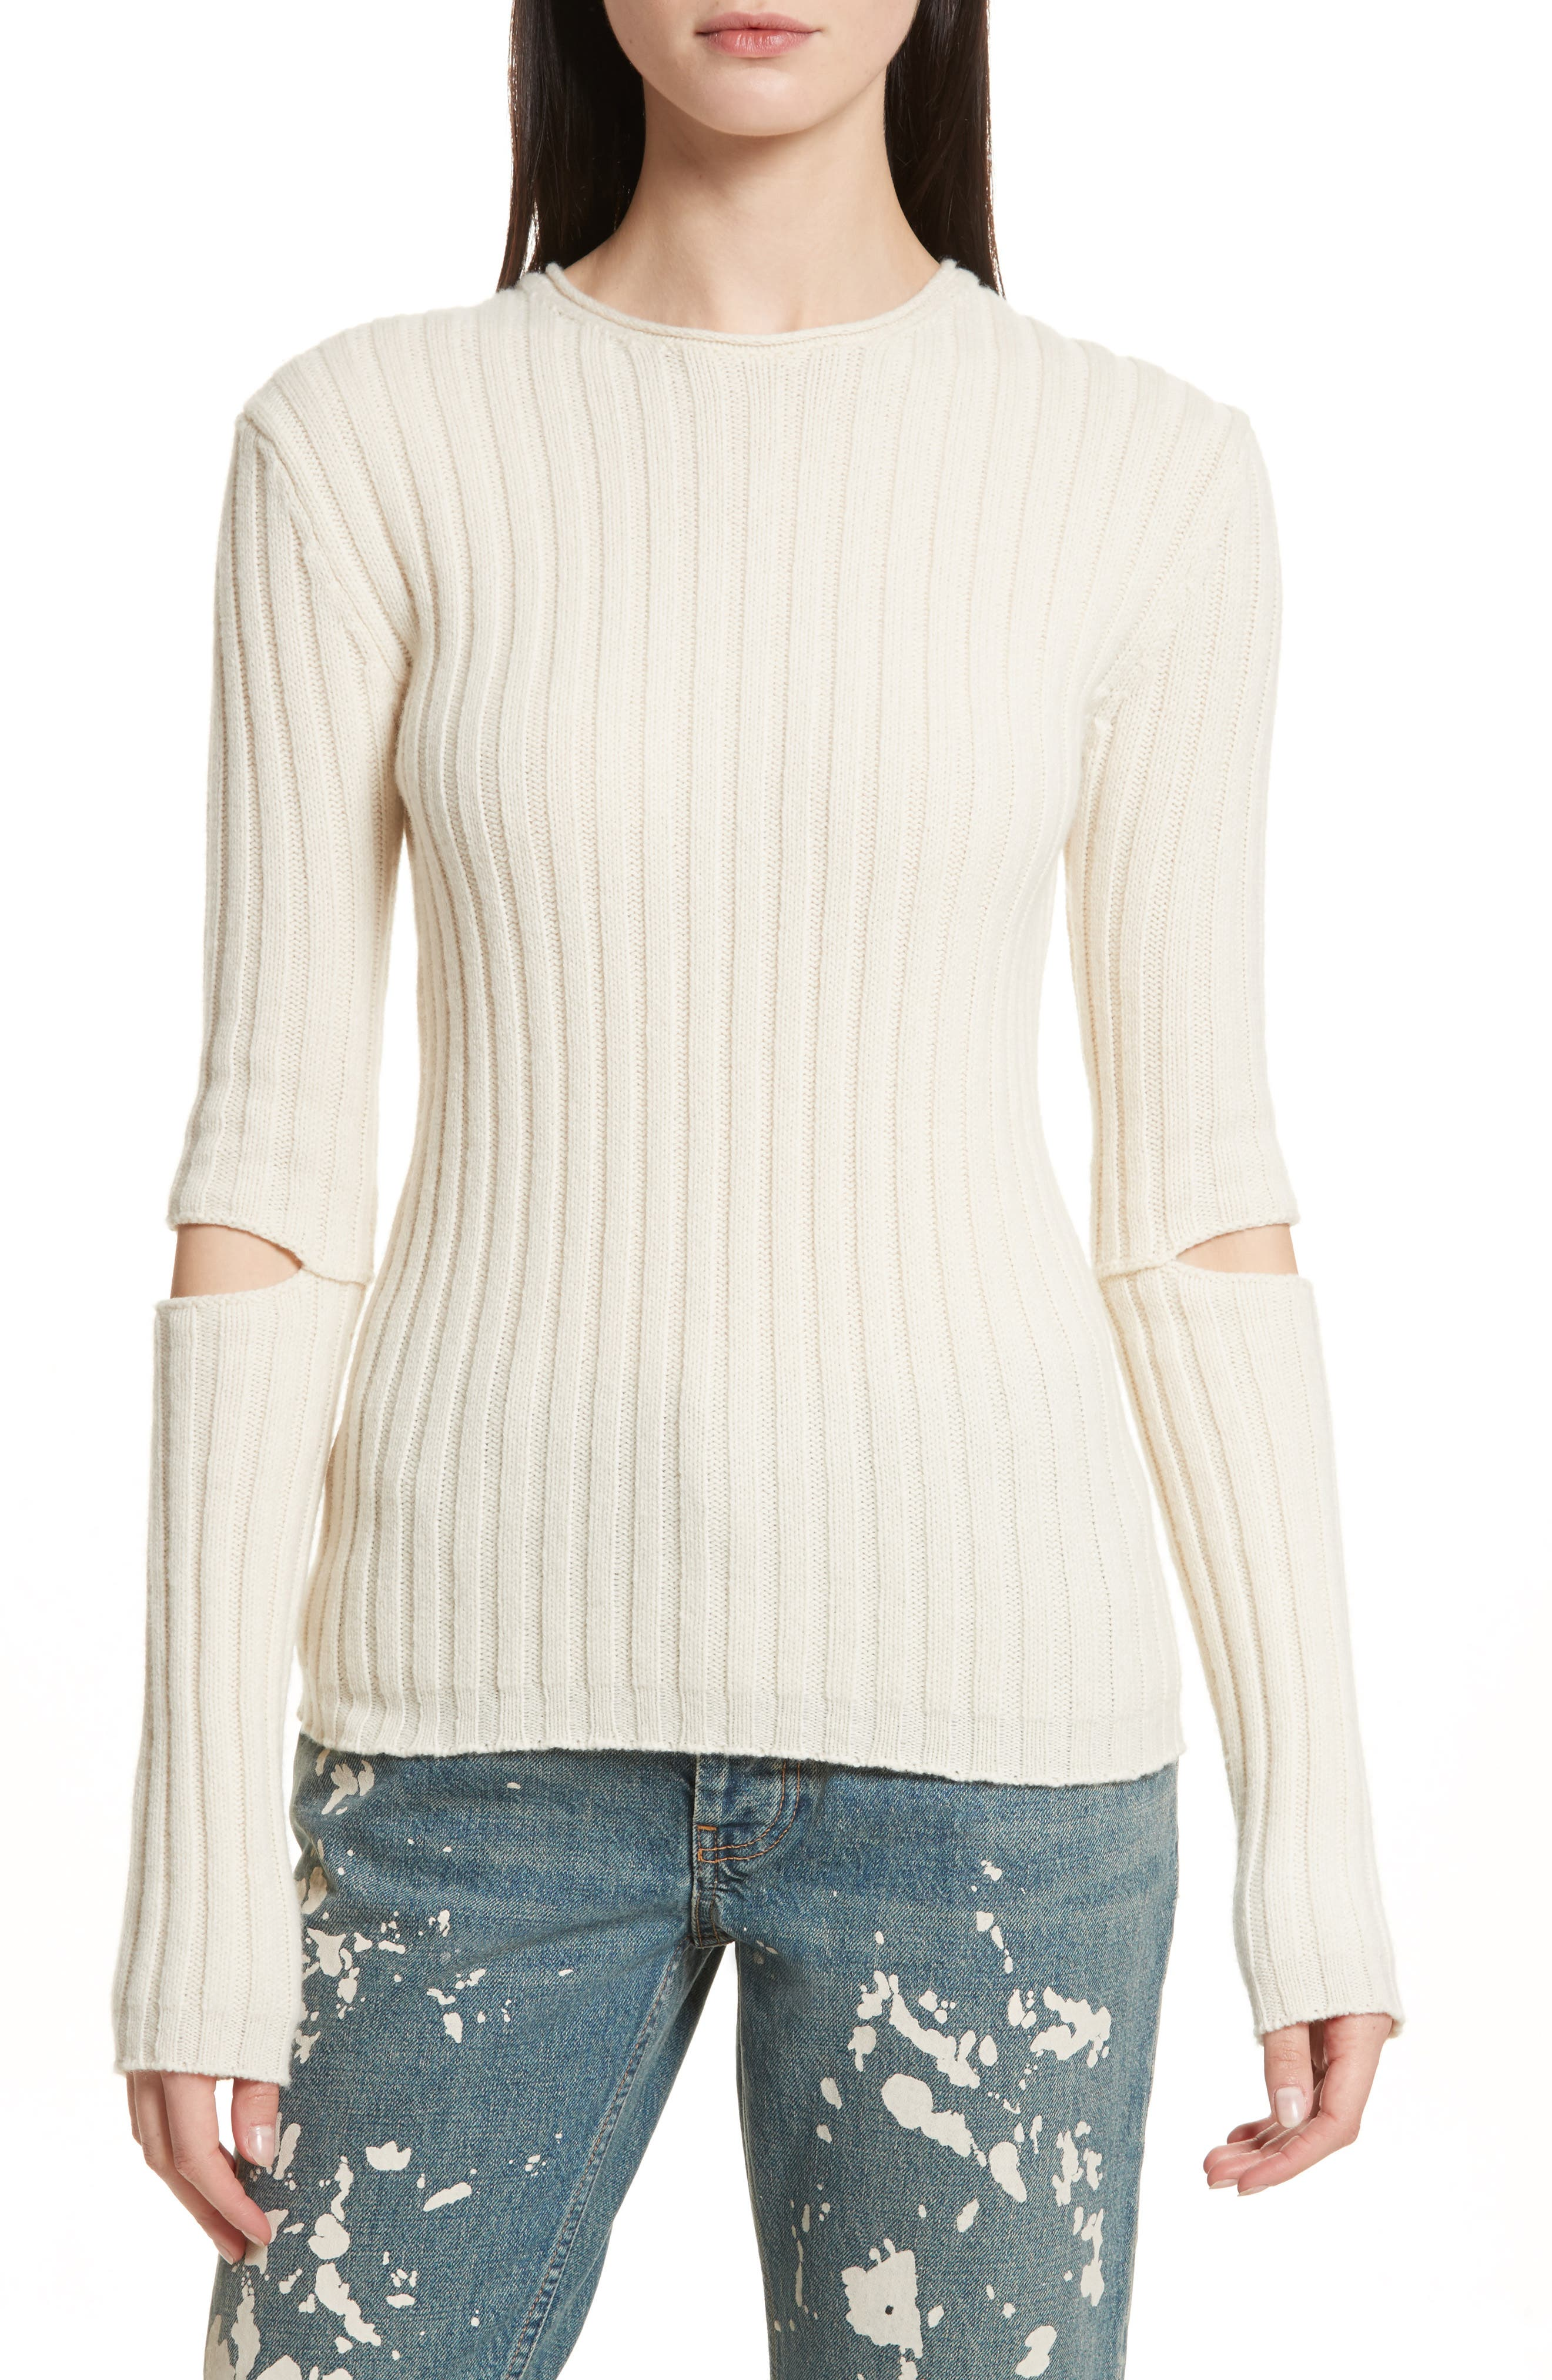 Alternate Image 1 Selected - Helmut Lang Re-Edition Elbow Cutout Lambswool Sweater